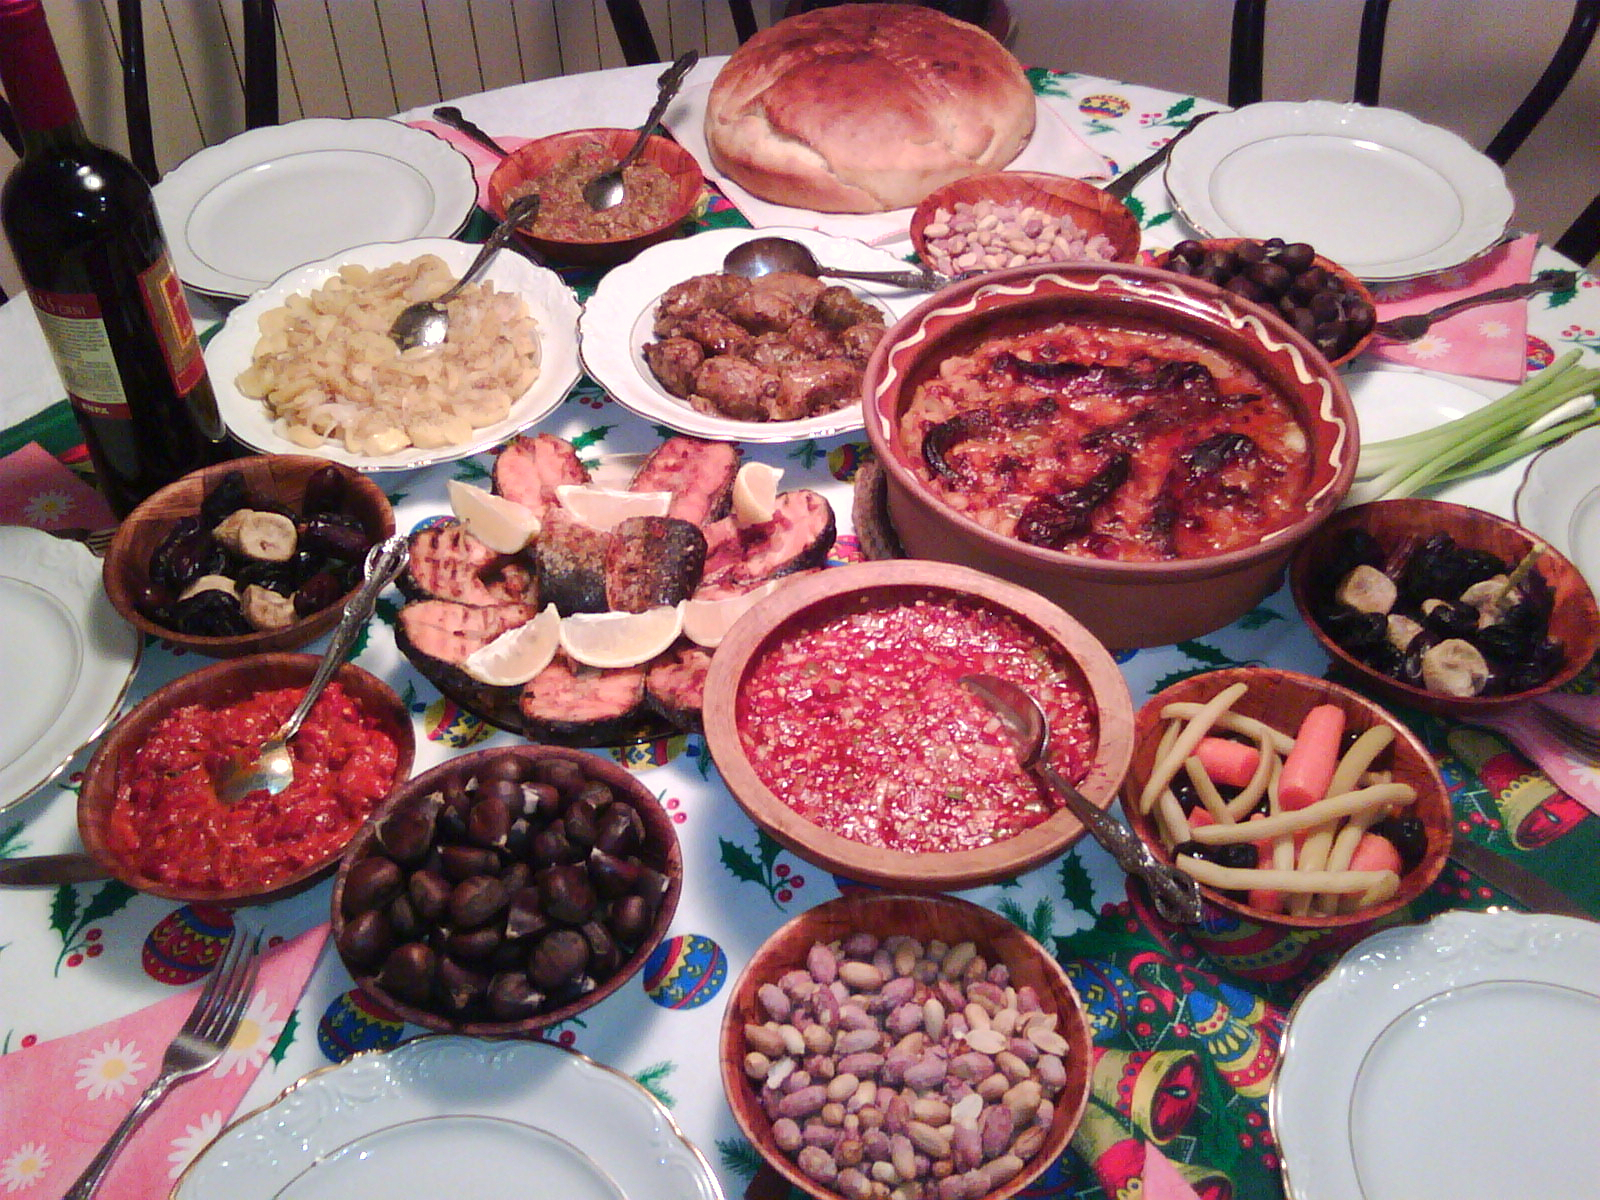 http://upload.wikimedia.org/wikipedia/commons/5/50/Christmas_Eve_(Badnik)_Dinner_Table_Macedonian.jpg